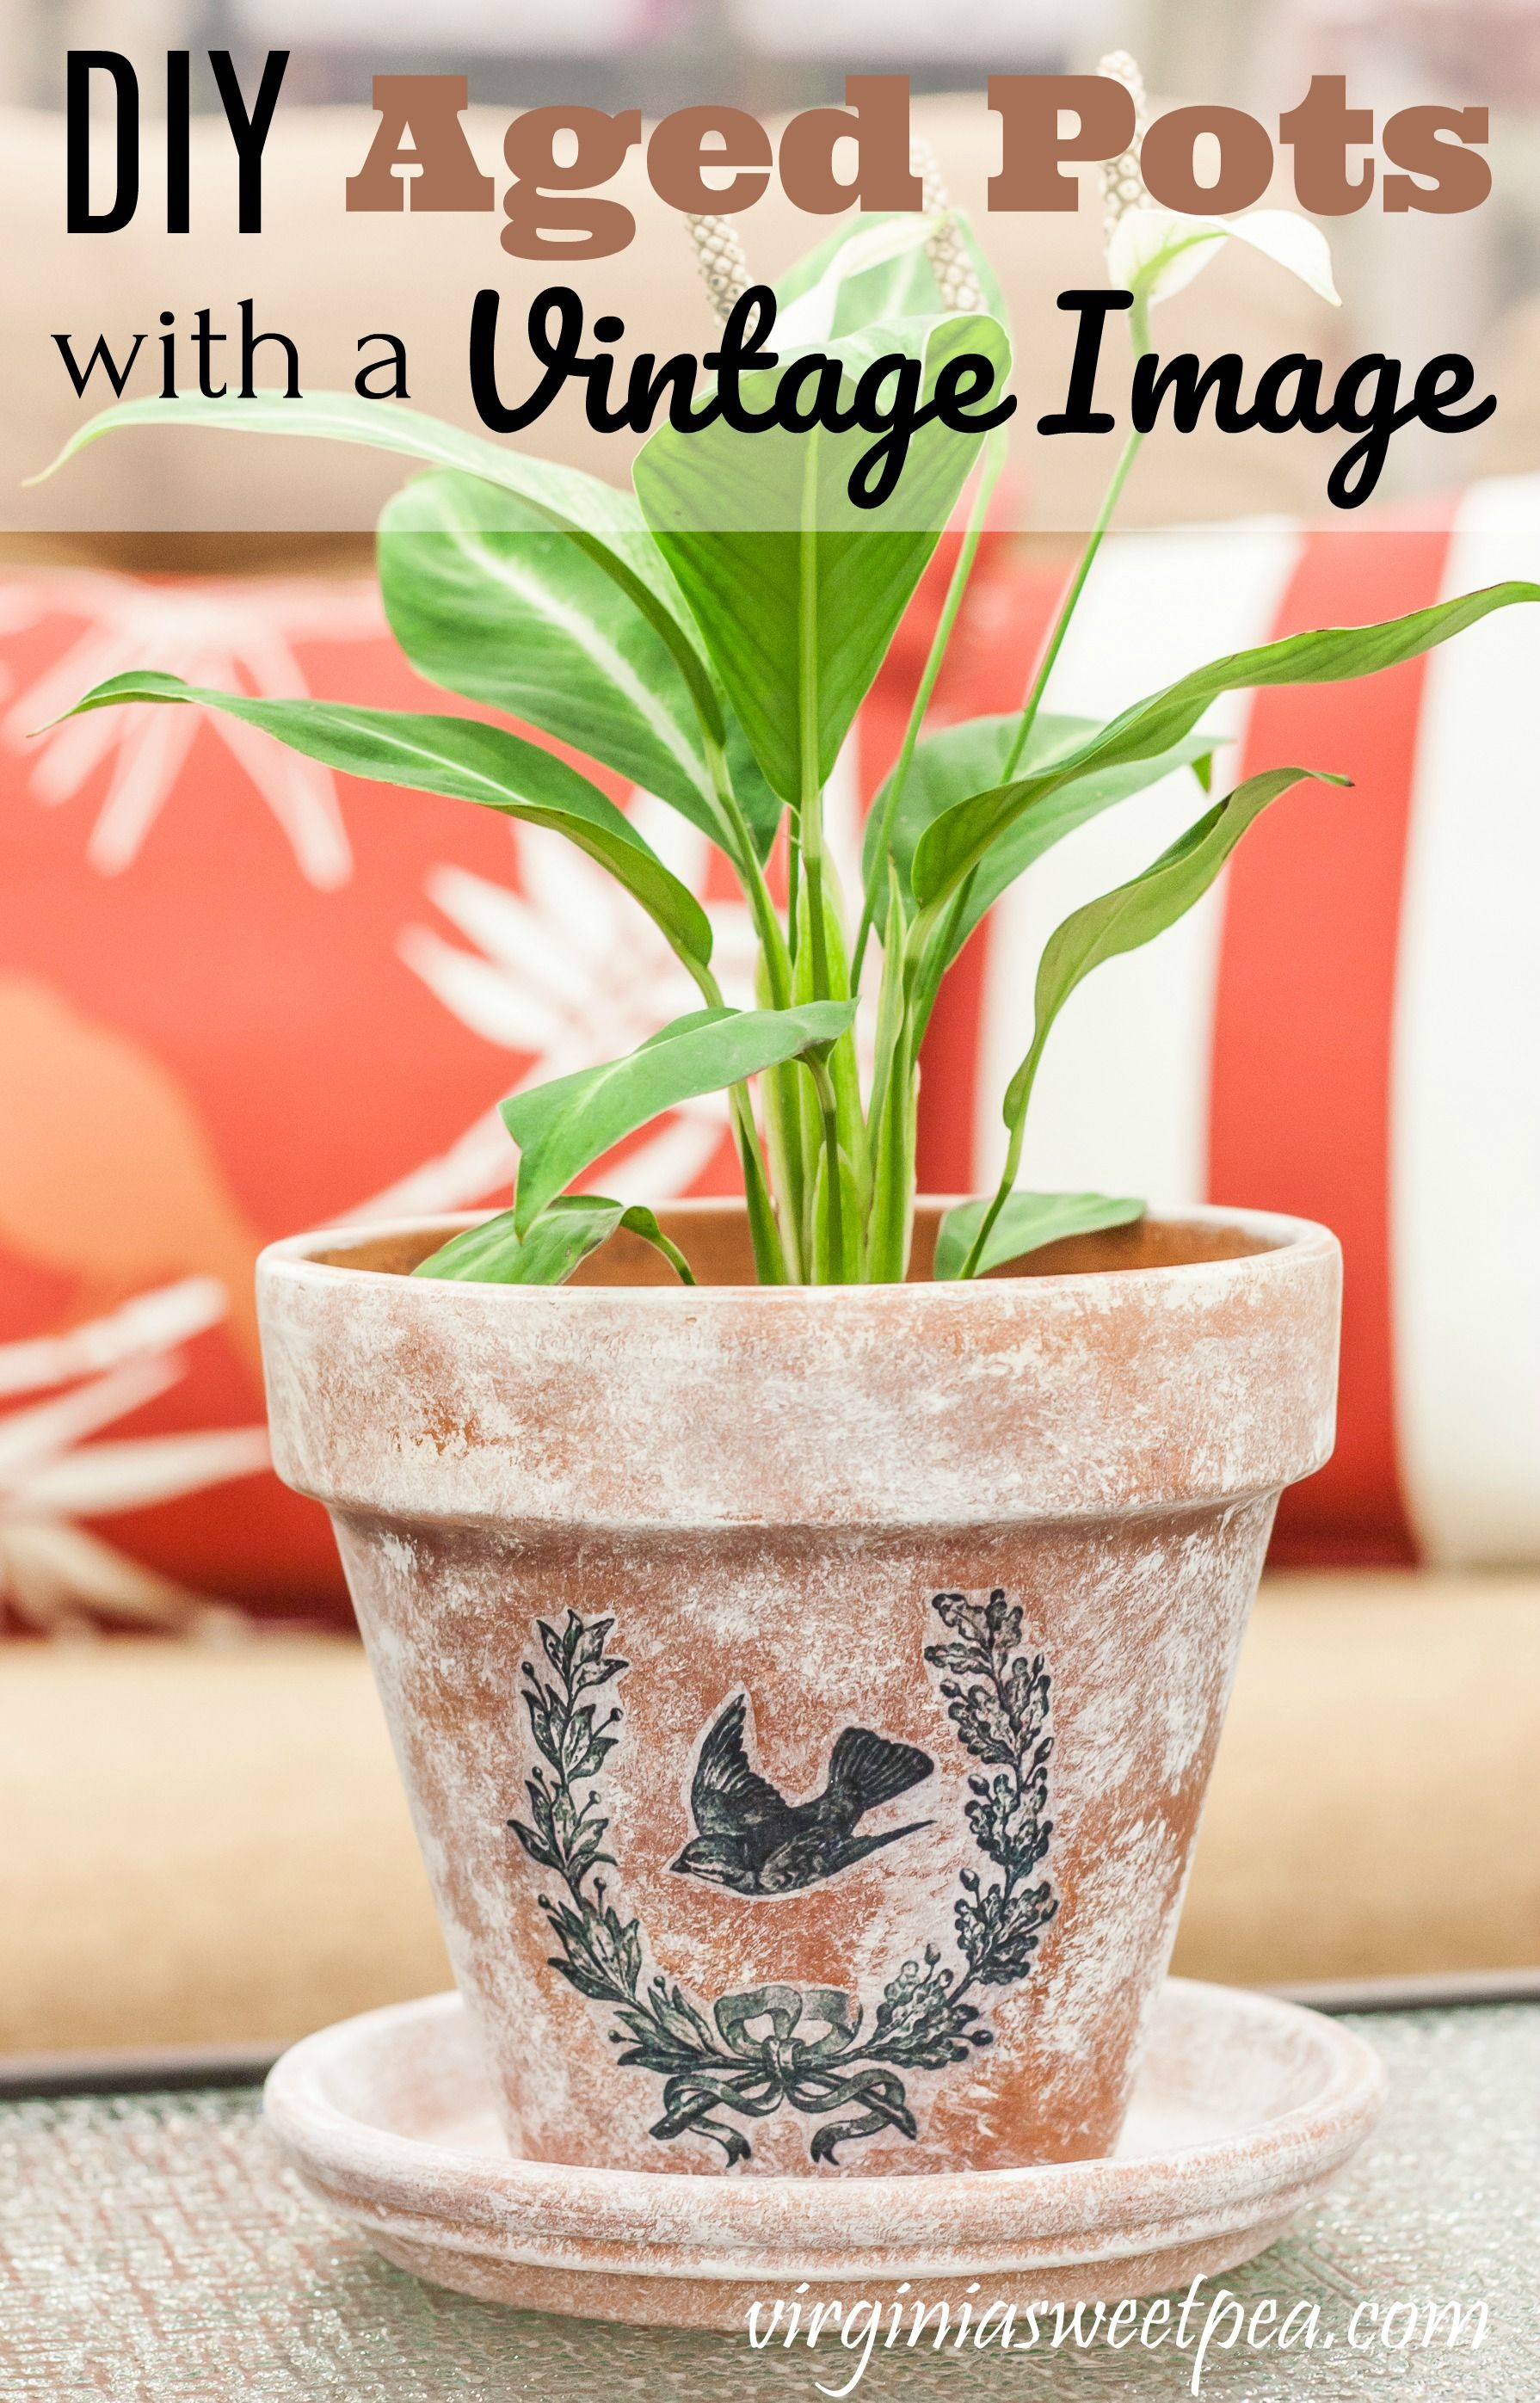 Diy Aged Pots With A Vintage Image With Images Cool Diy Projects Diy Flower Pots